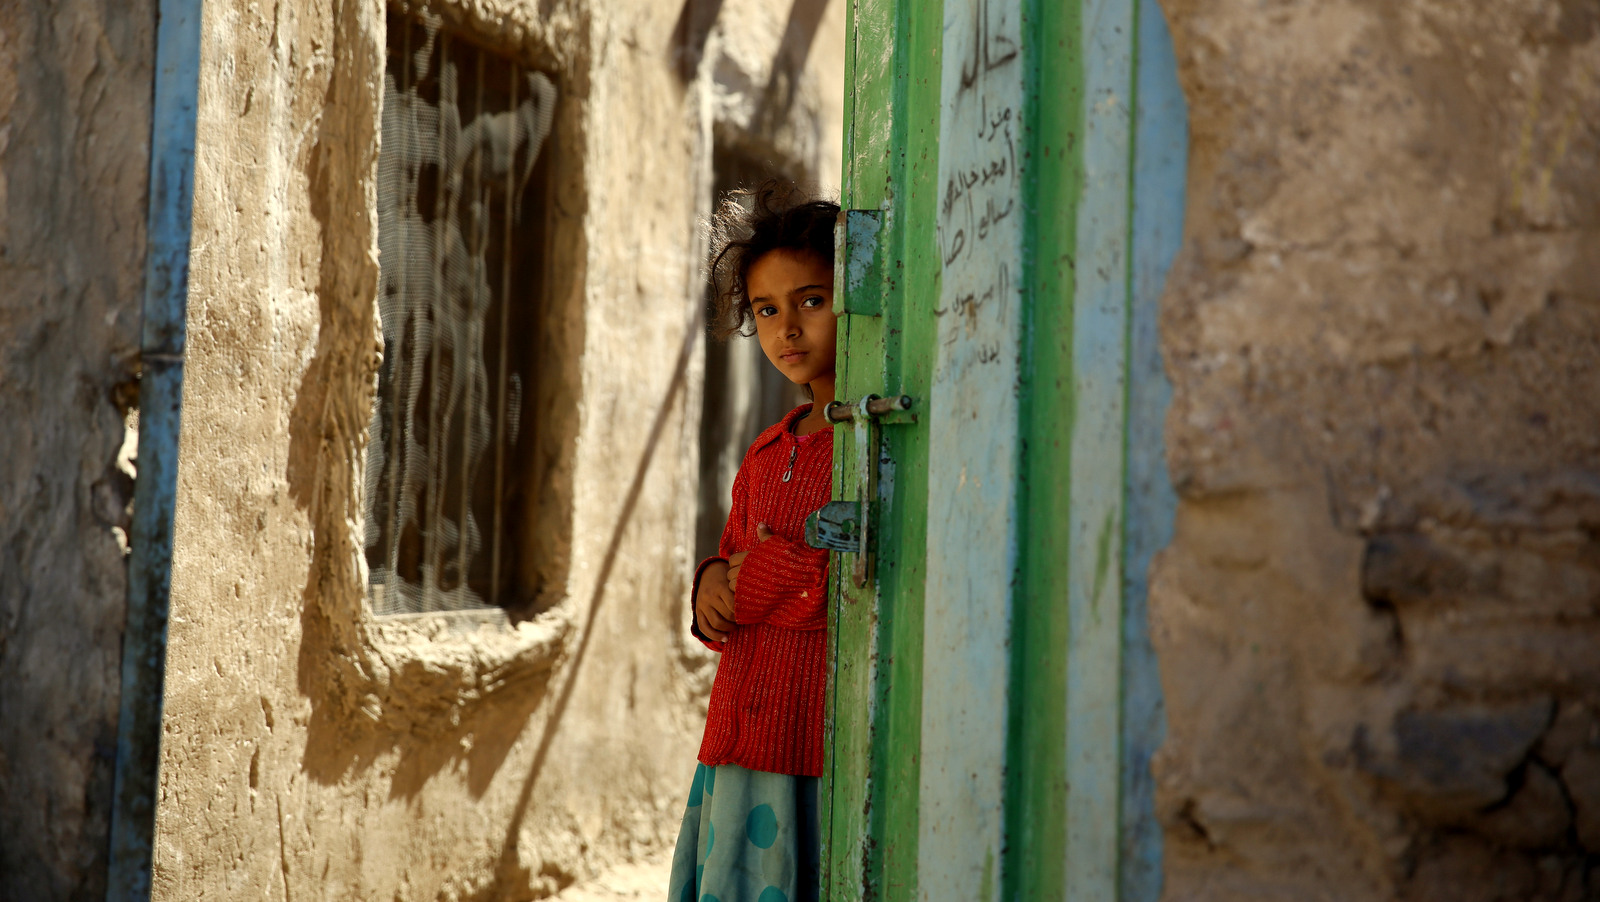 Yemen | Child Marriage